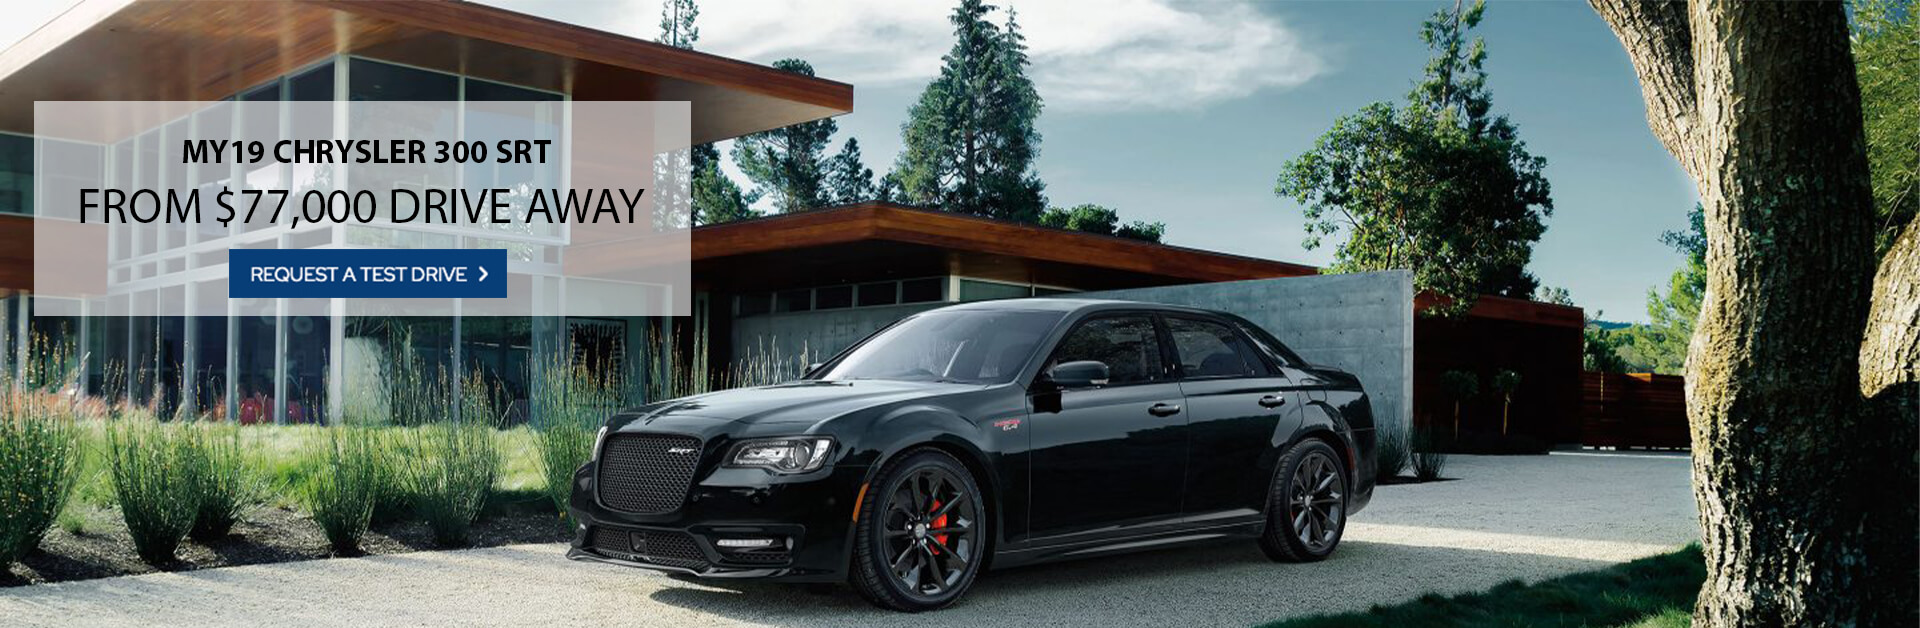 Chrysler January Offers 2021